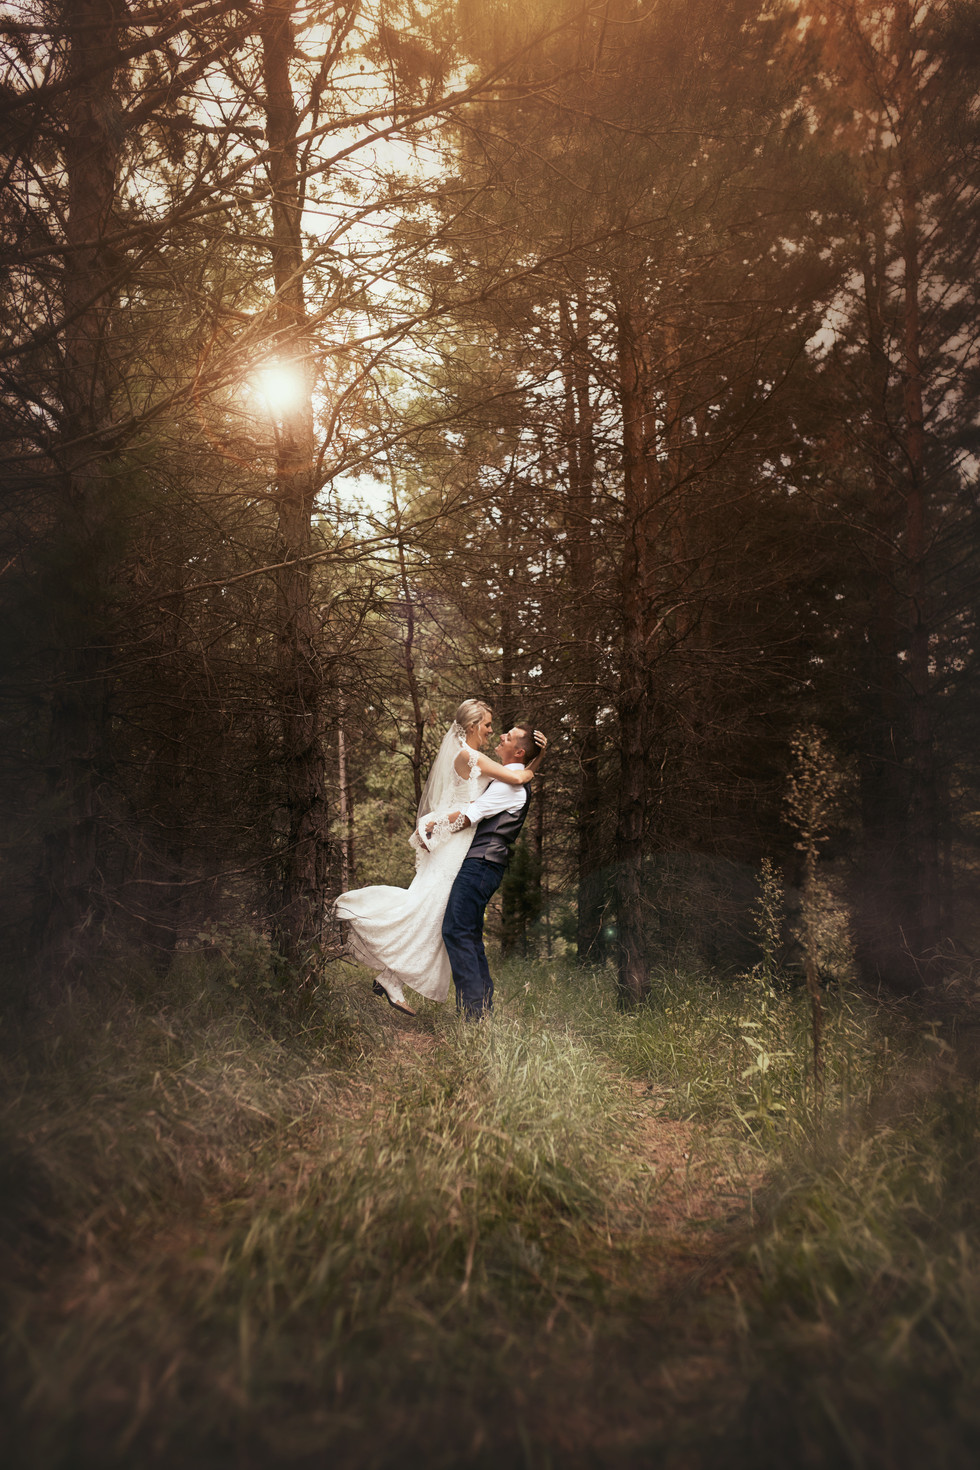 Bride and groom in the woods with light